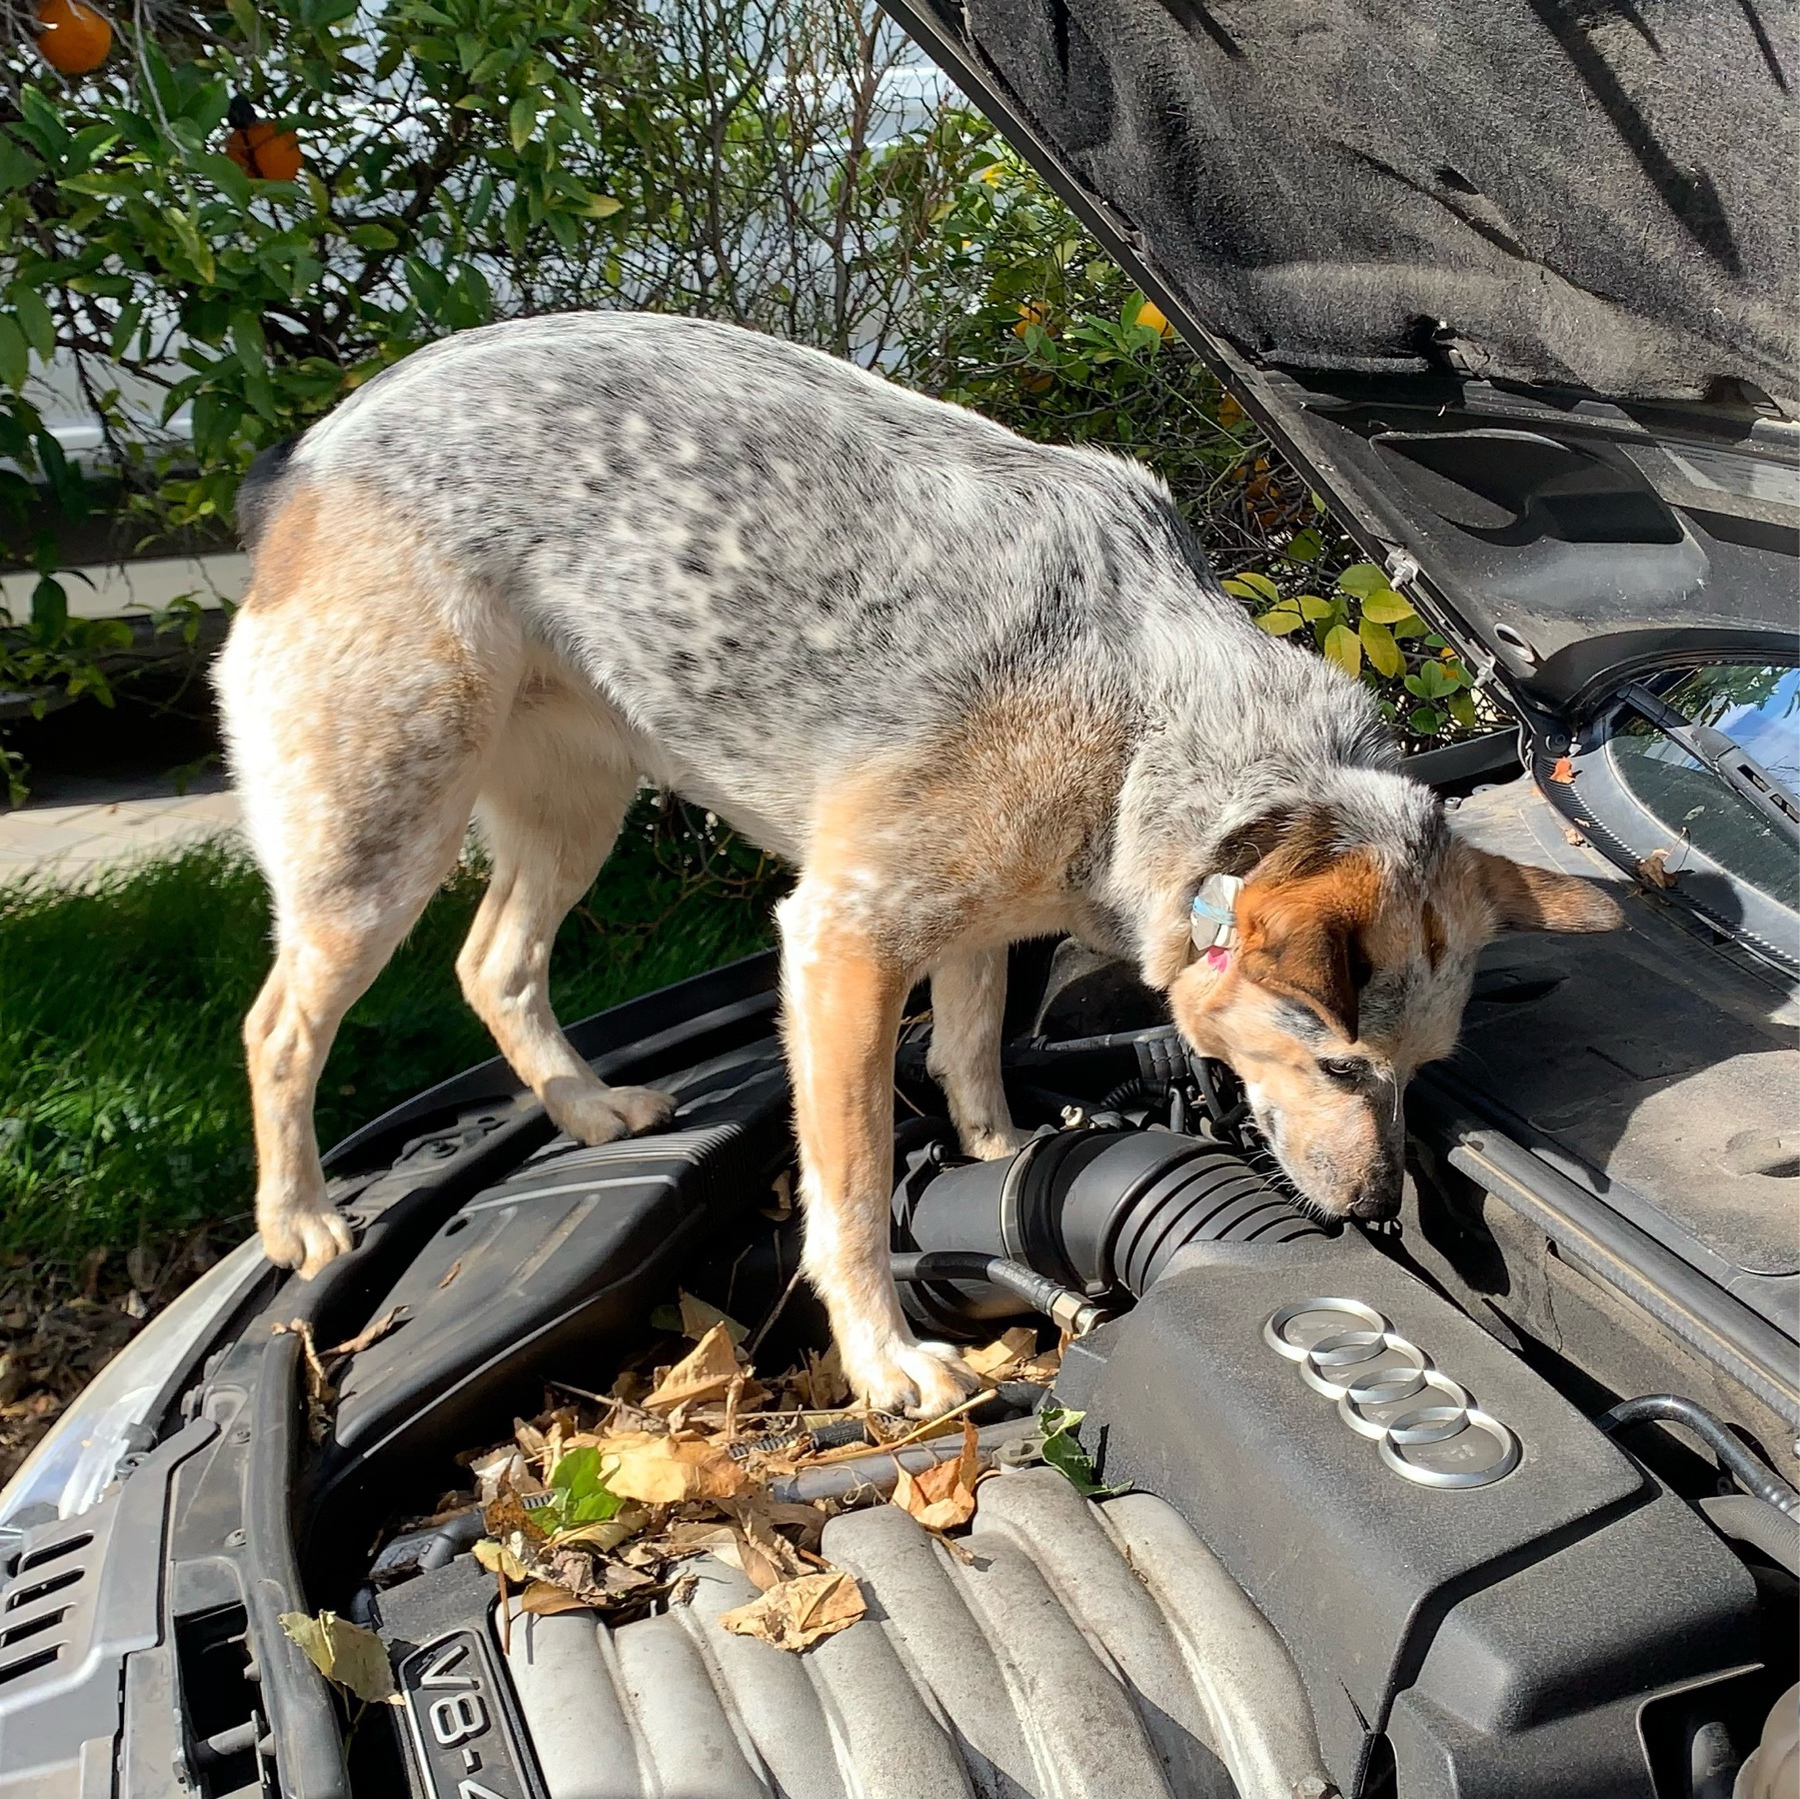 small cattle dog standing on a car engine, under an open hood